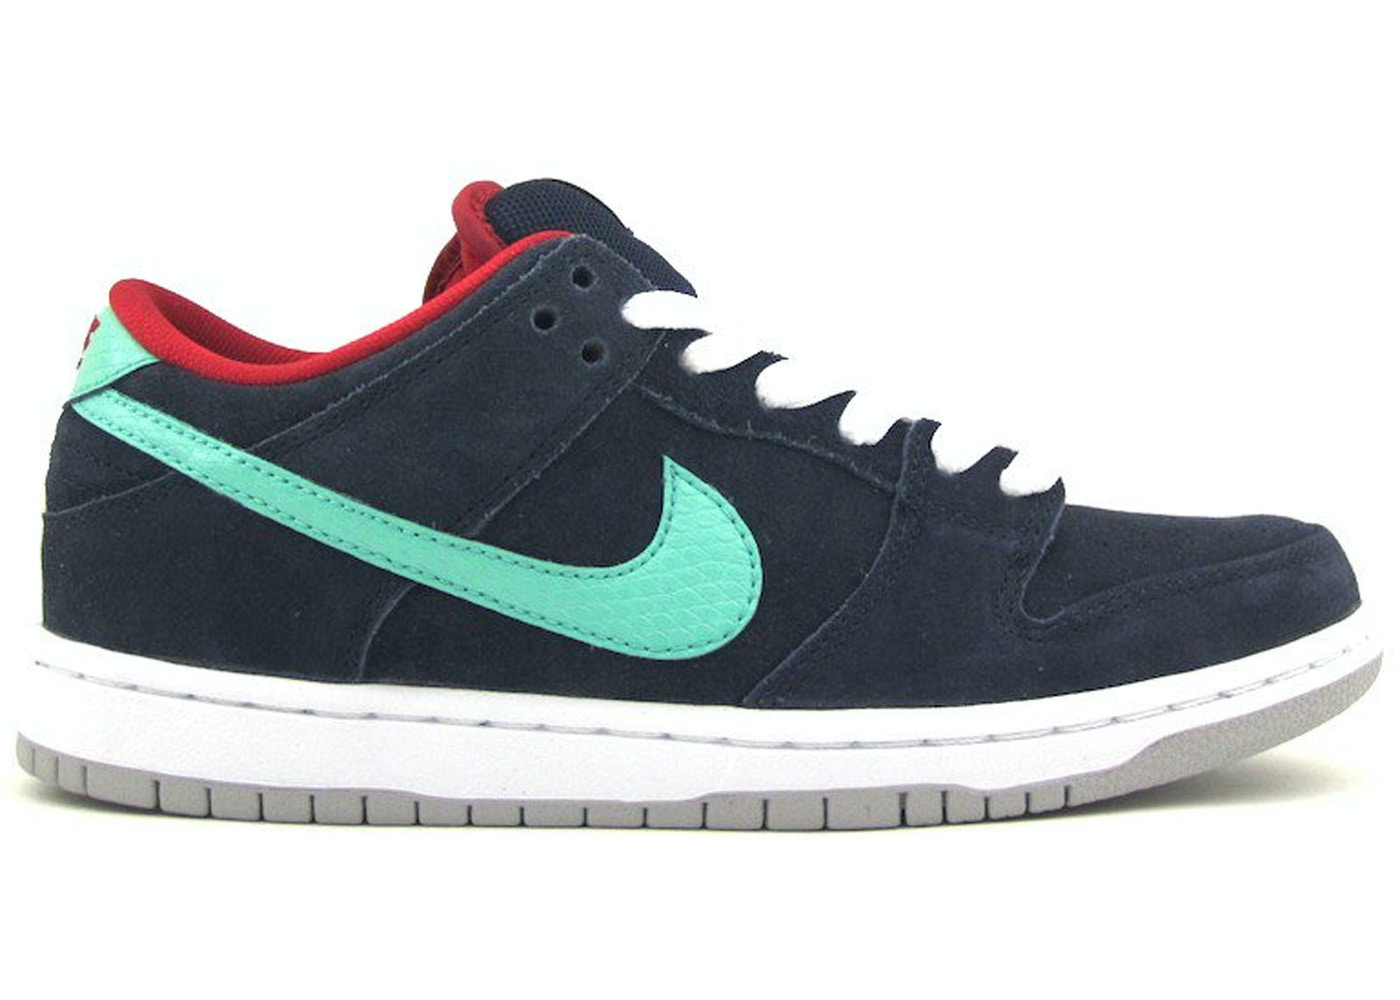 100% authentic 1abfb 0fcc9 Nike Dunk SB Low Obsidian Crystal Mint - 304292-436